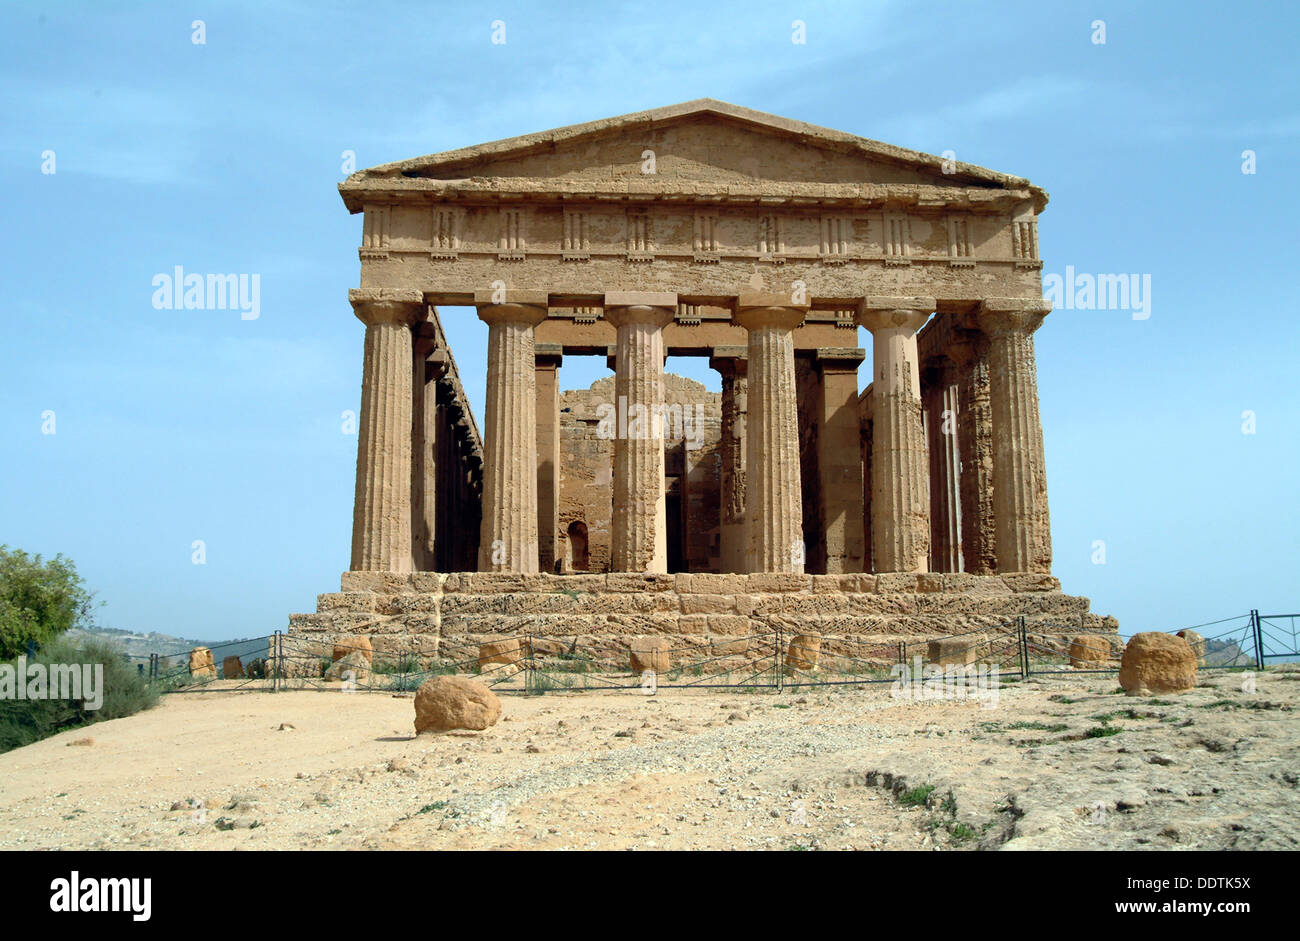 The Temple of Concordia, Agrigento, Sicily, Italy. Artist: Samuel Magal Stock Photo